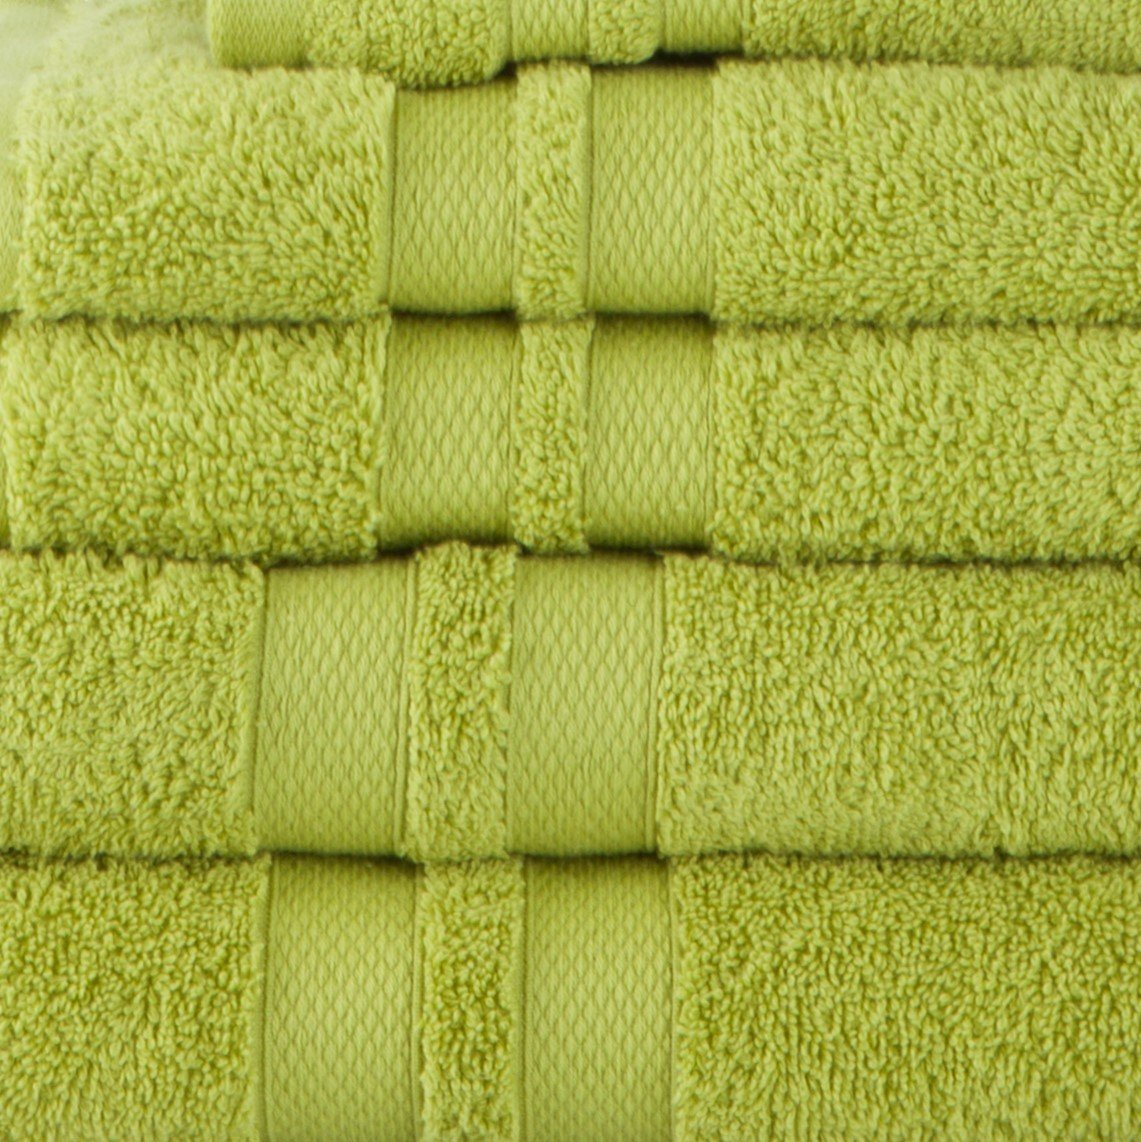 Celery Absorbent /& Ultra Soft 6 Piece Towel Set with Unique Honeycomb Double Border Superior Premium Cotton